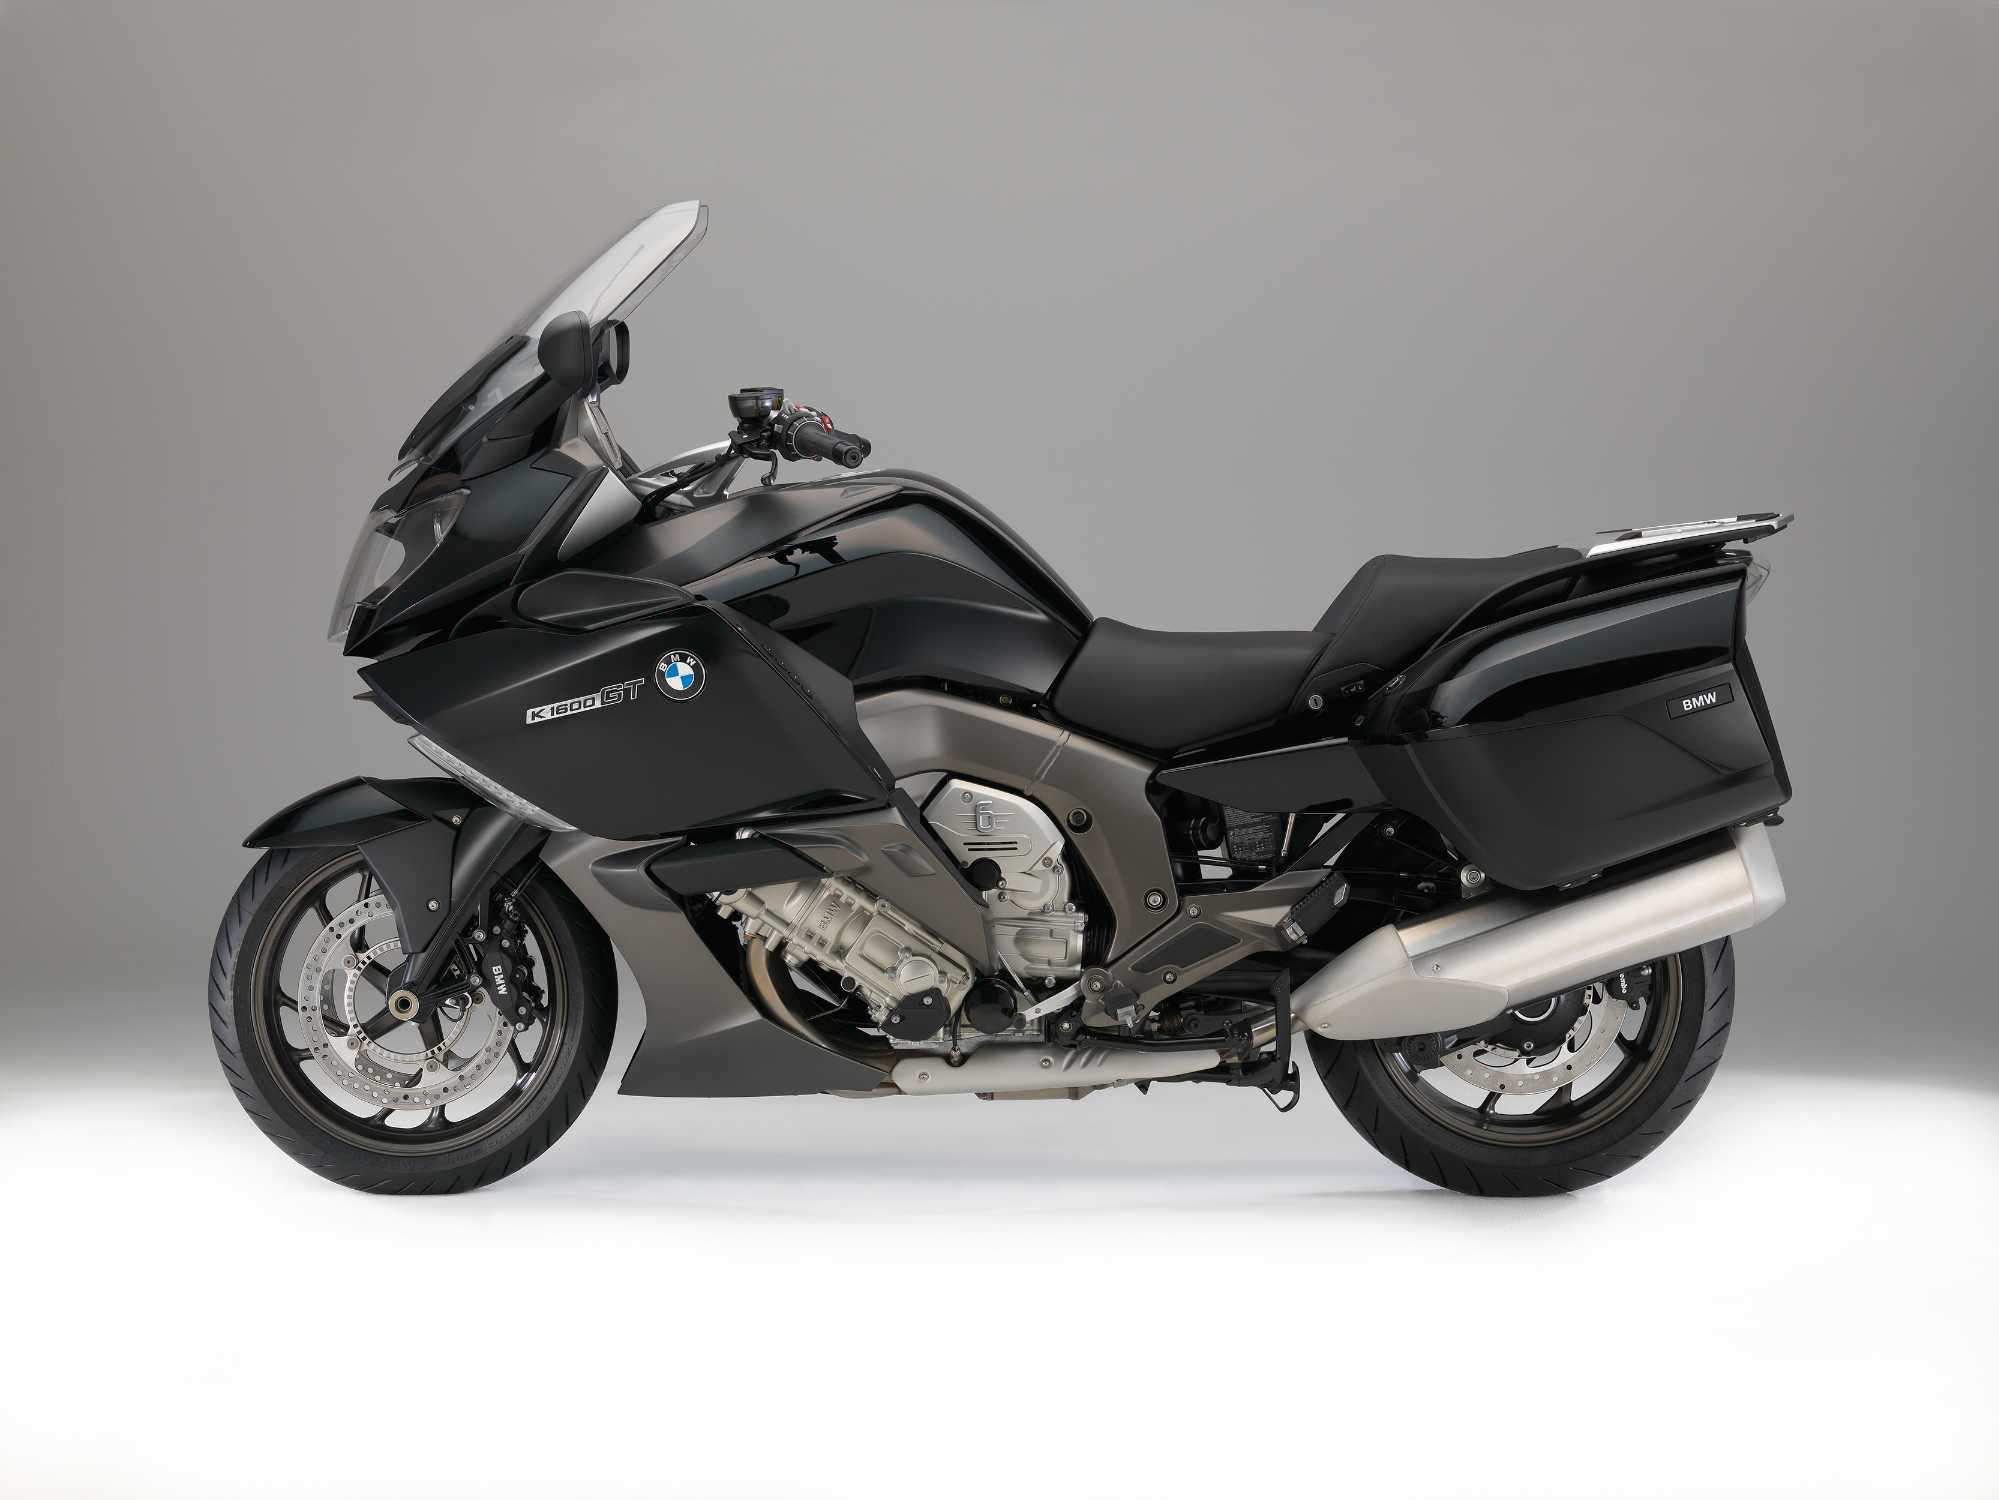 bmw k 1600 gt black storm metallic 07 2014. Black Bedroom Furniture Sets. Home Design Ideas